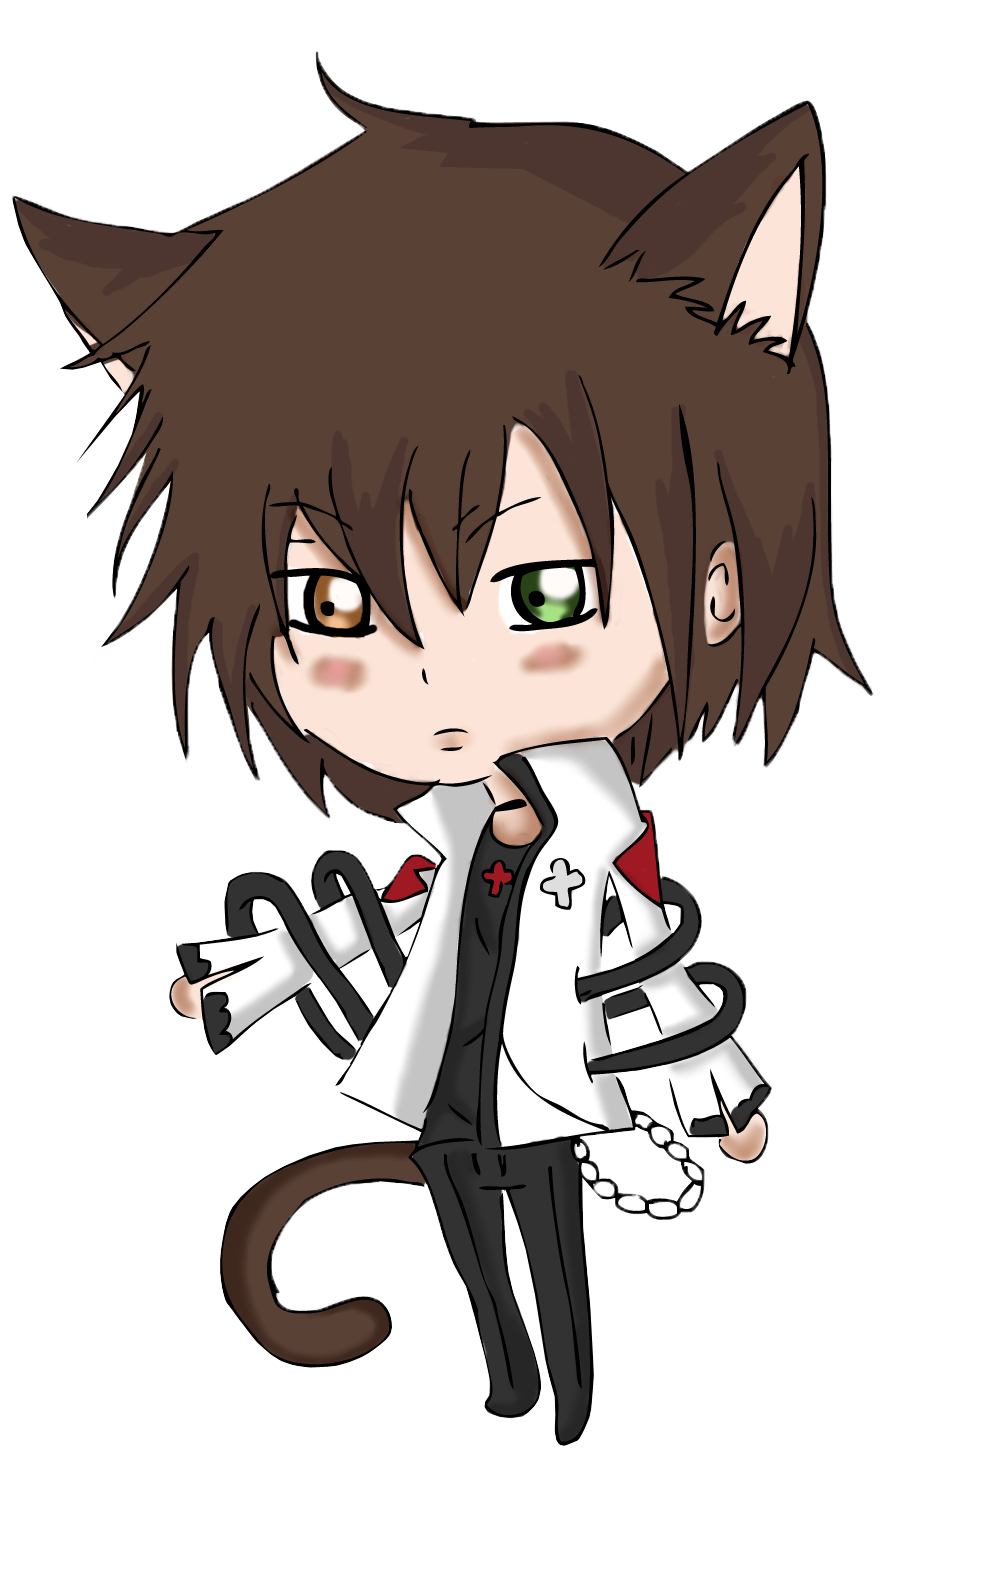 Images For > Boy Chibi With Hoodie Seni